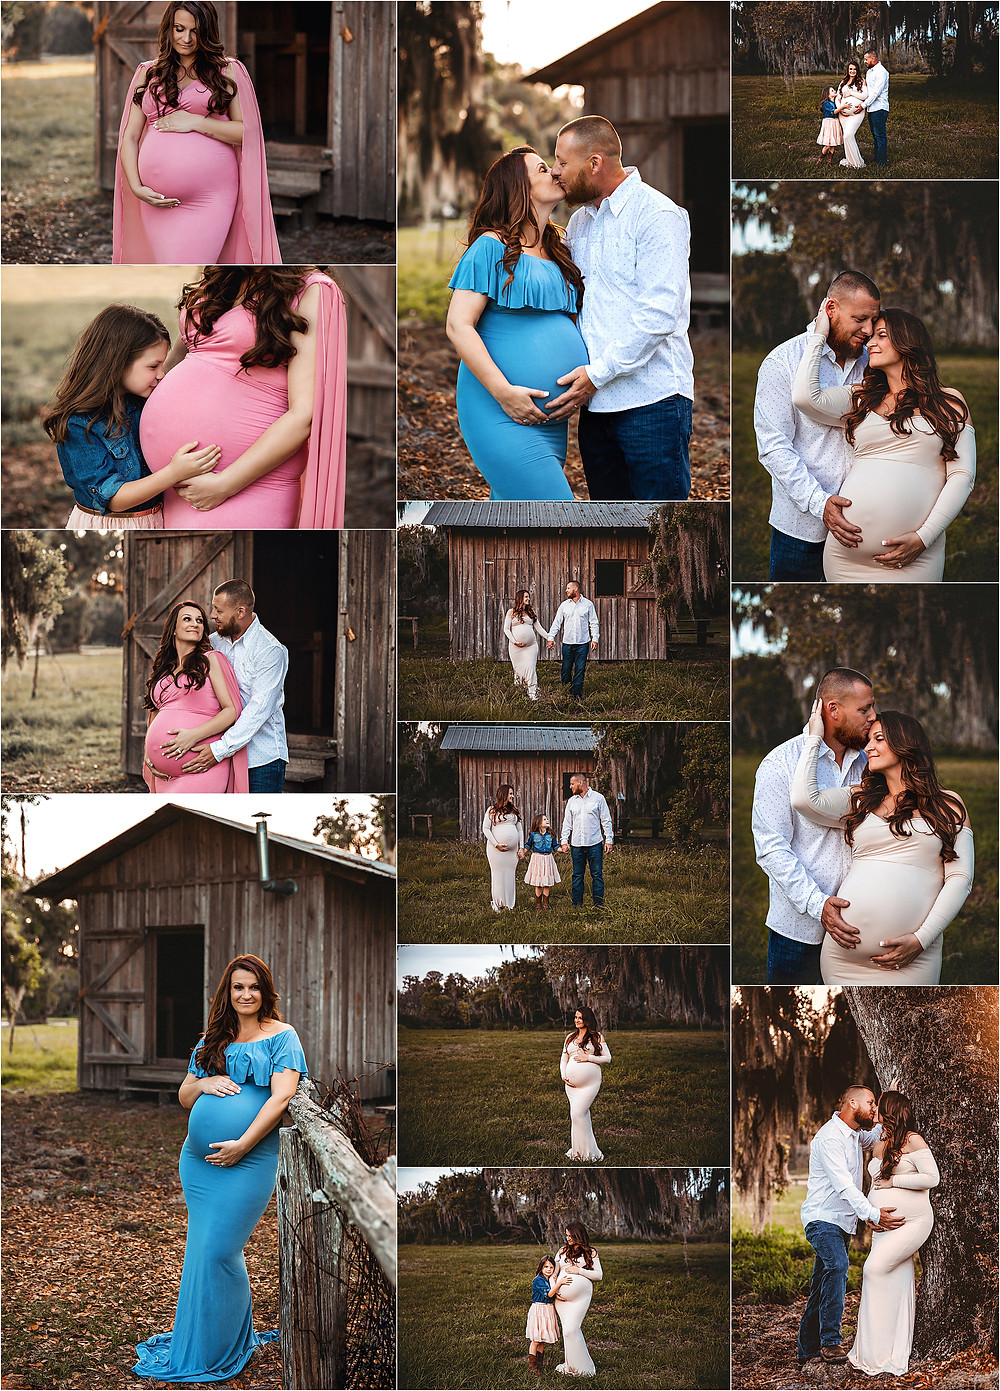 A rustic maternity photo session at Circle B Bar reserve in Lakeland Florida. Expecting Mother is swearing blue and pink maternity dress in front of a rustic barn.